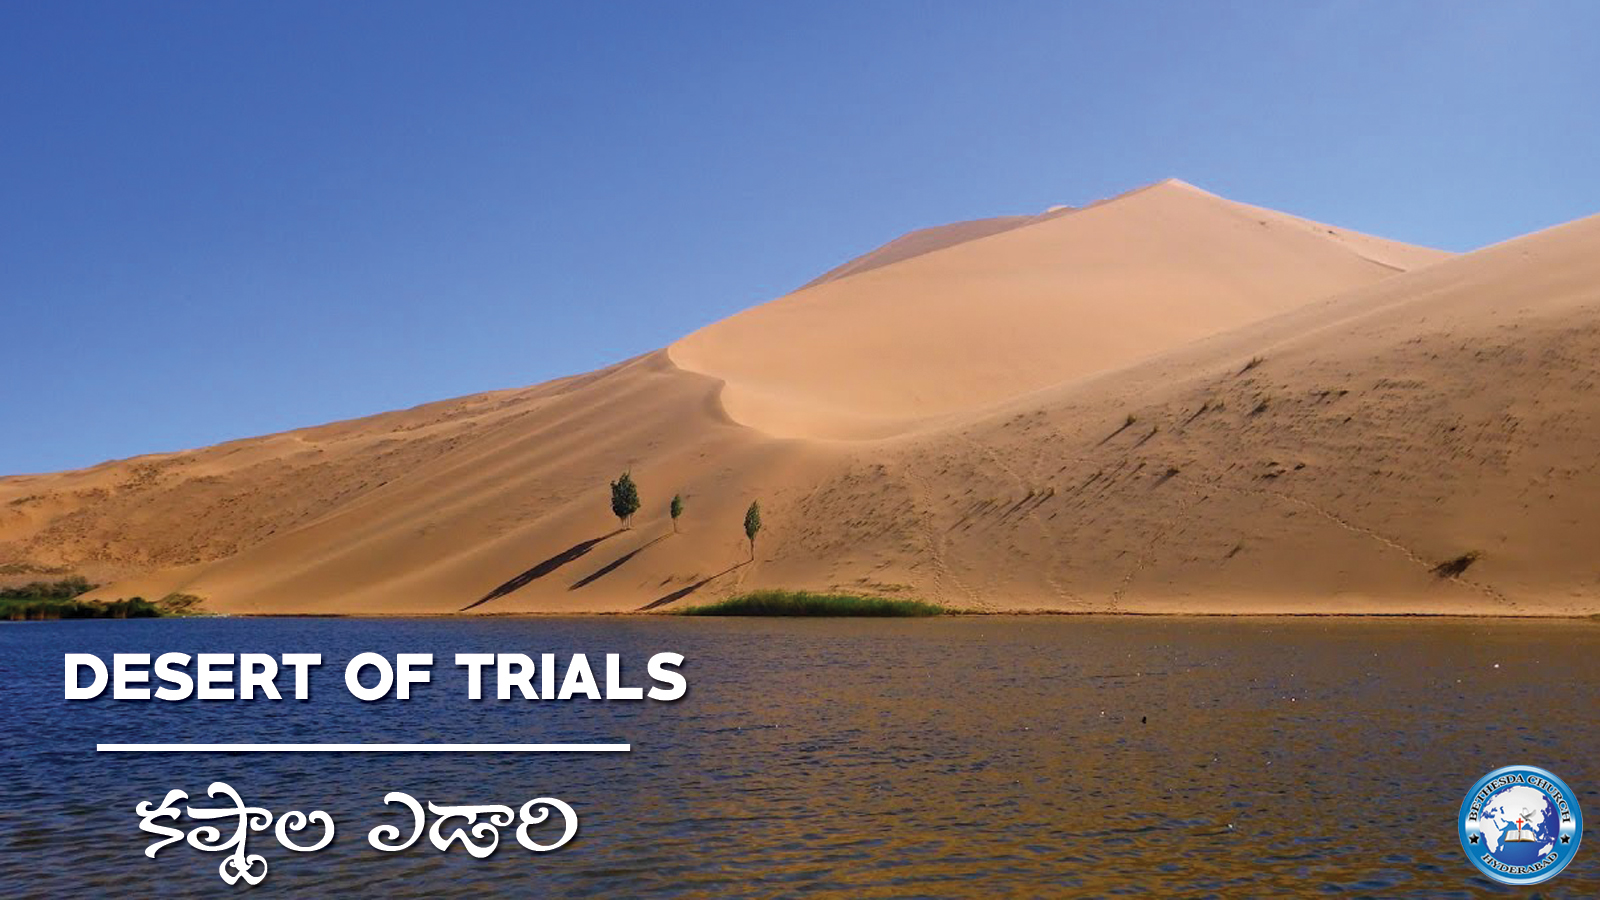 Desert of Trials (A323)